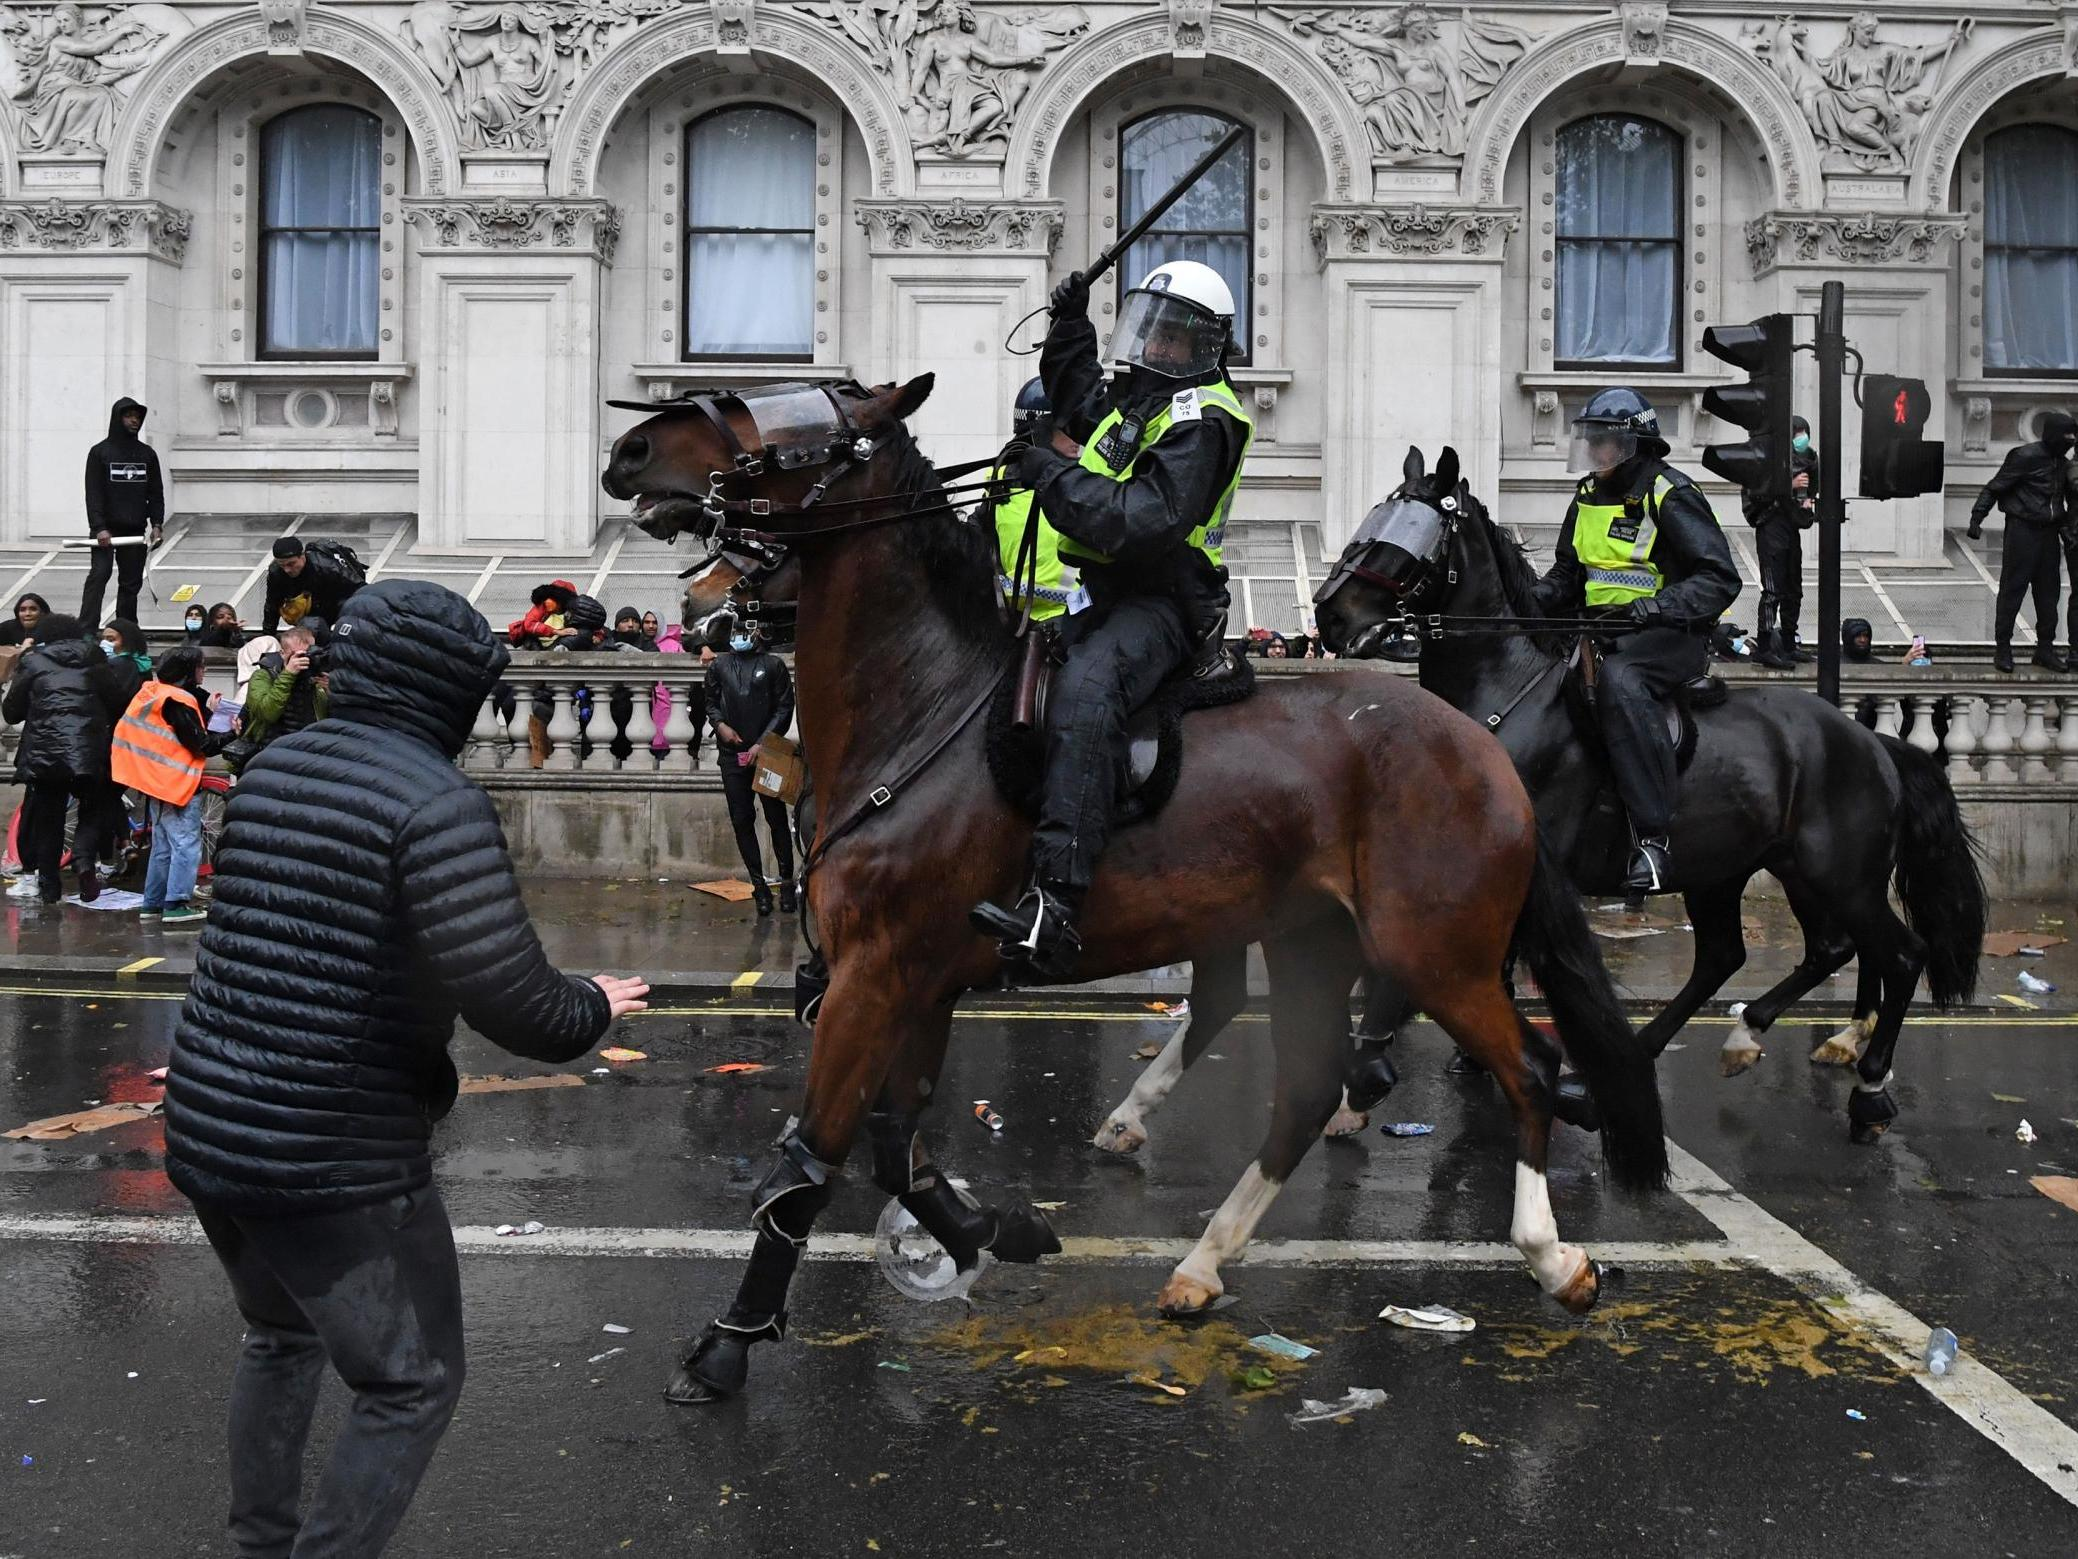 Uk Black Lives Matter Protests Officer Falls From Horse As Mounted Police Charge Protesters And Cenotaph Vandalised The Independent The Independent